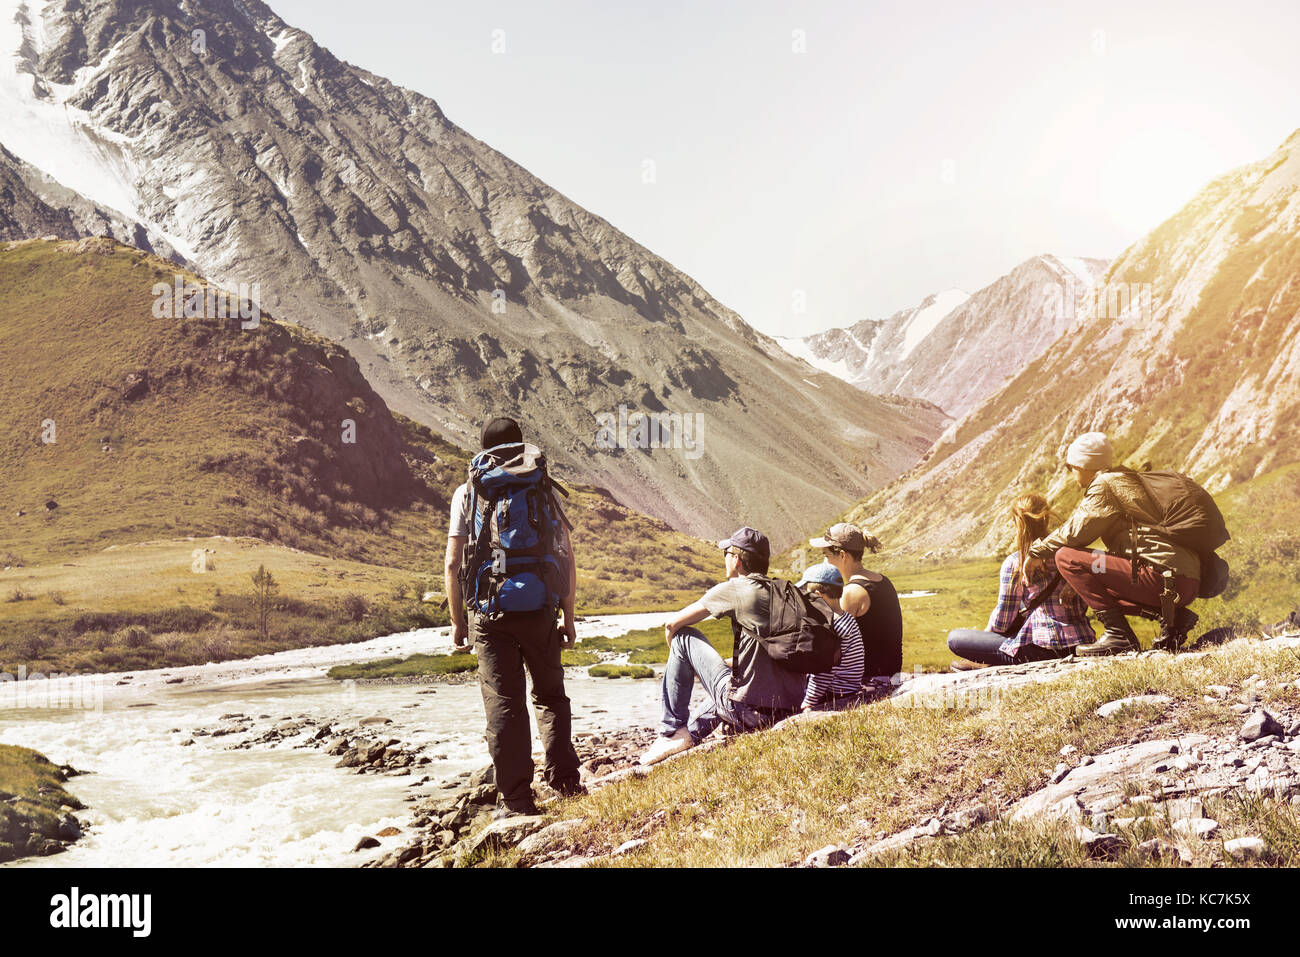 Big group of people travel expedition mountains - Stock Image